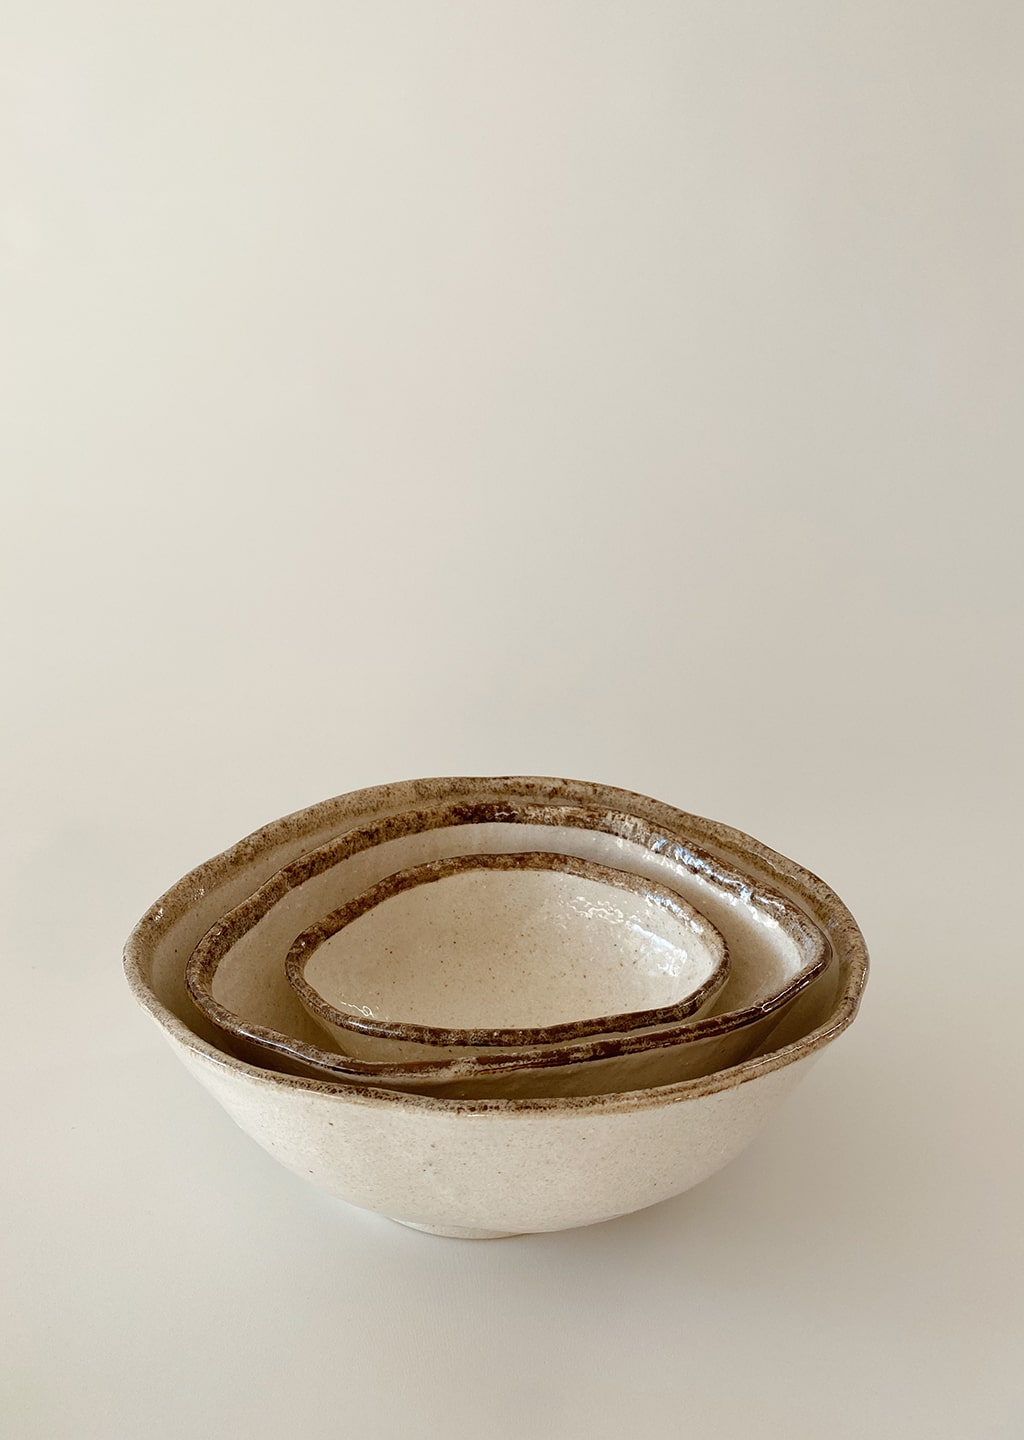 Shirokaratsu Ceramic Bowl